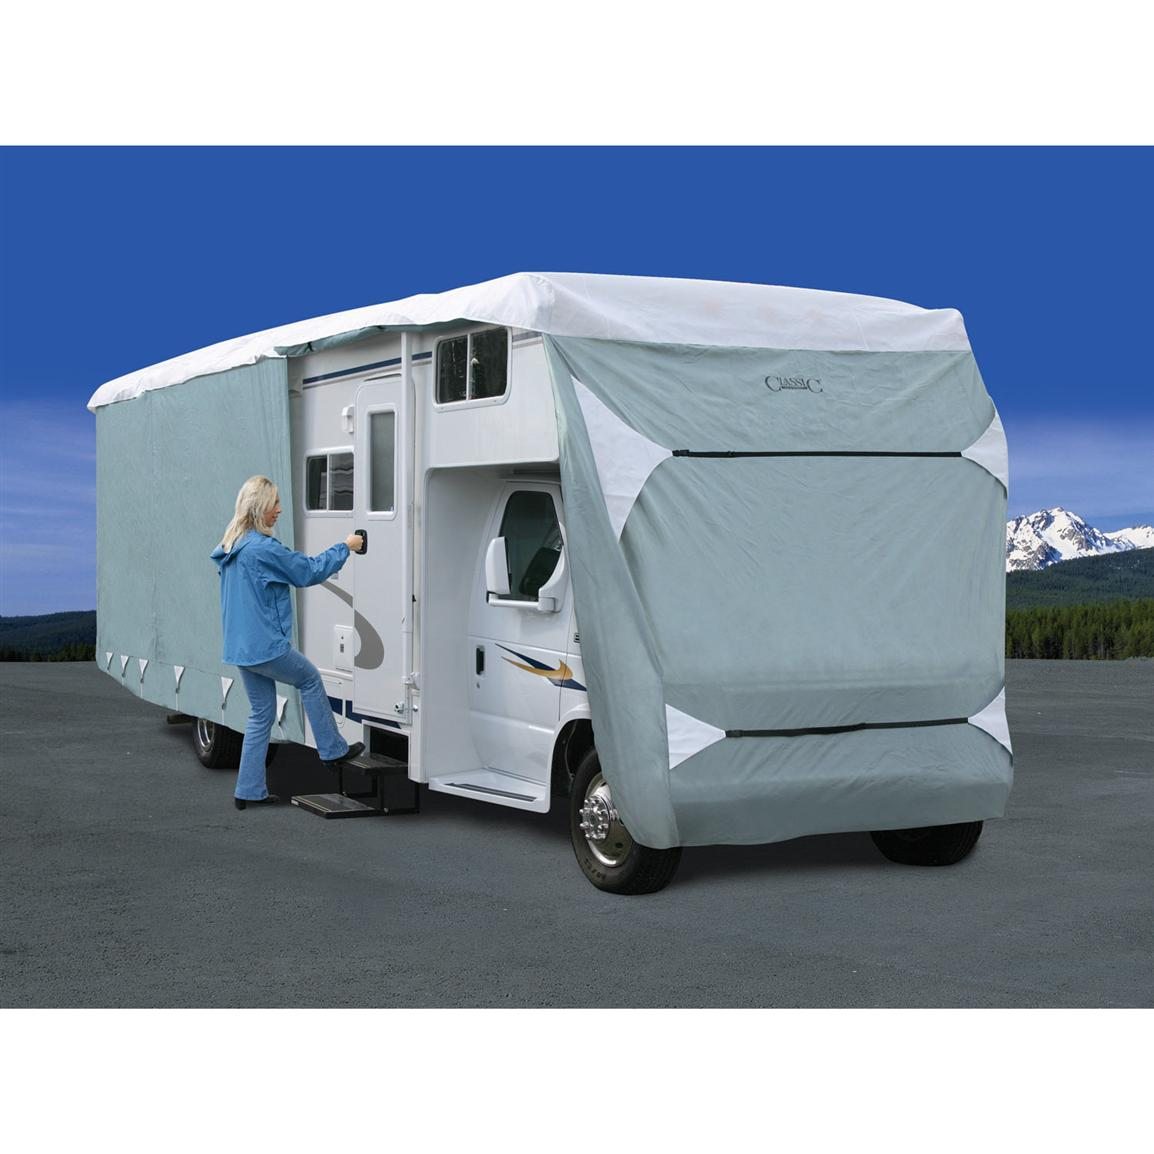 Deluxe PolyPro III Class C RV Cover, Gray